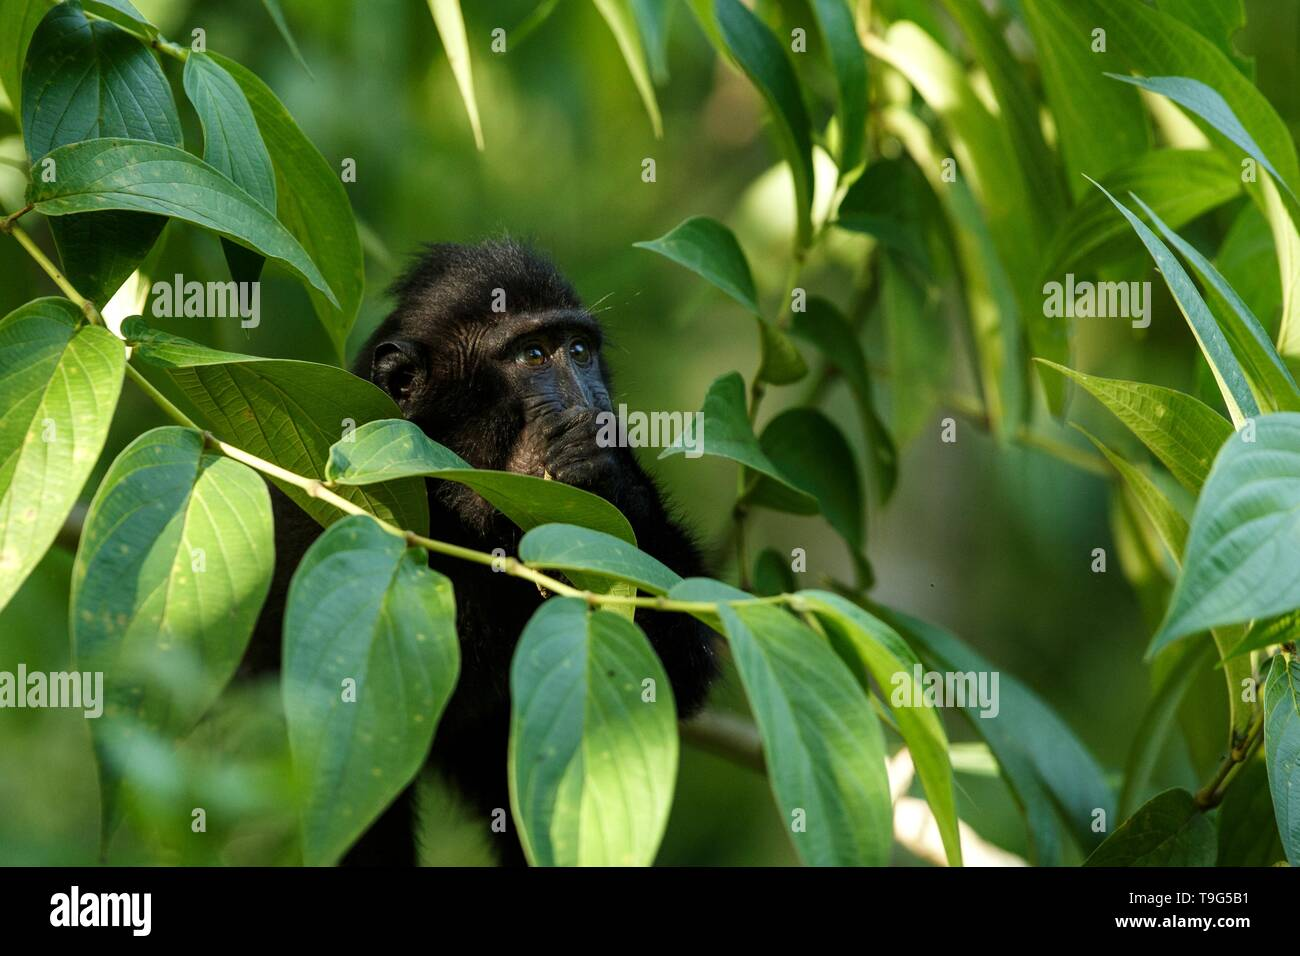 Small cute baby macaque on the branch of the tree eating leaves. Close up portrait. Endemic black crested macaque or the black ape. Unique mammals in  - Stock Image